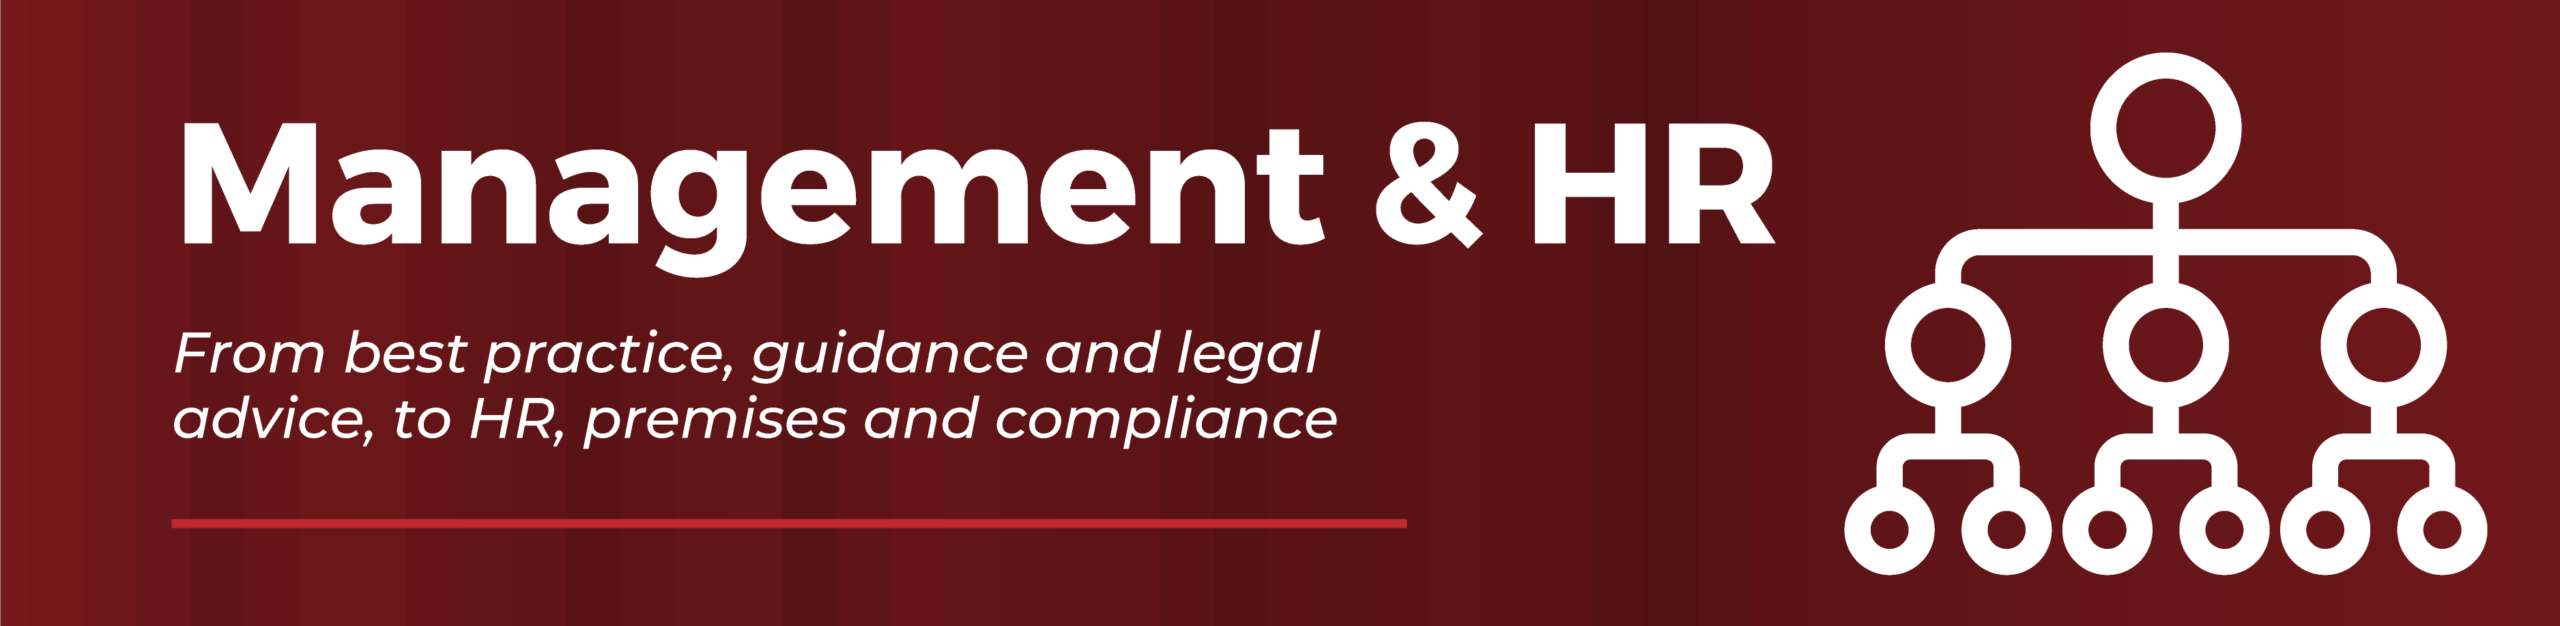 Management & HR. From best practice, guidance and legal advice, to HR, premises and compliance issues.